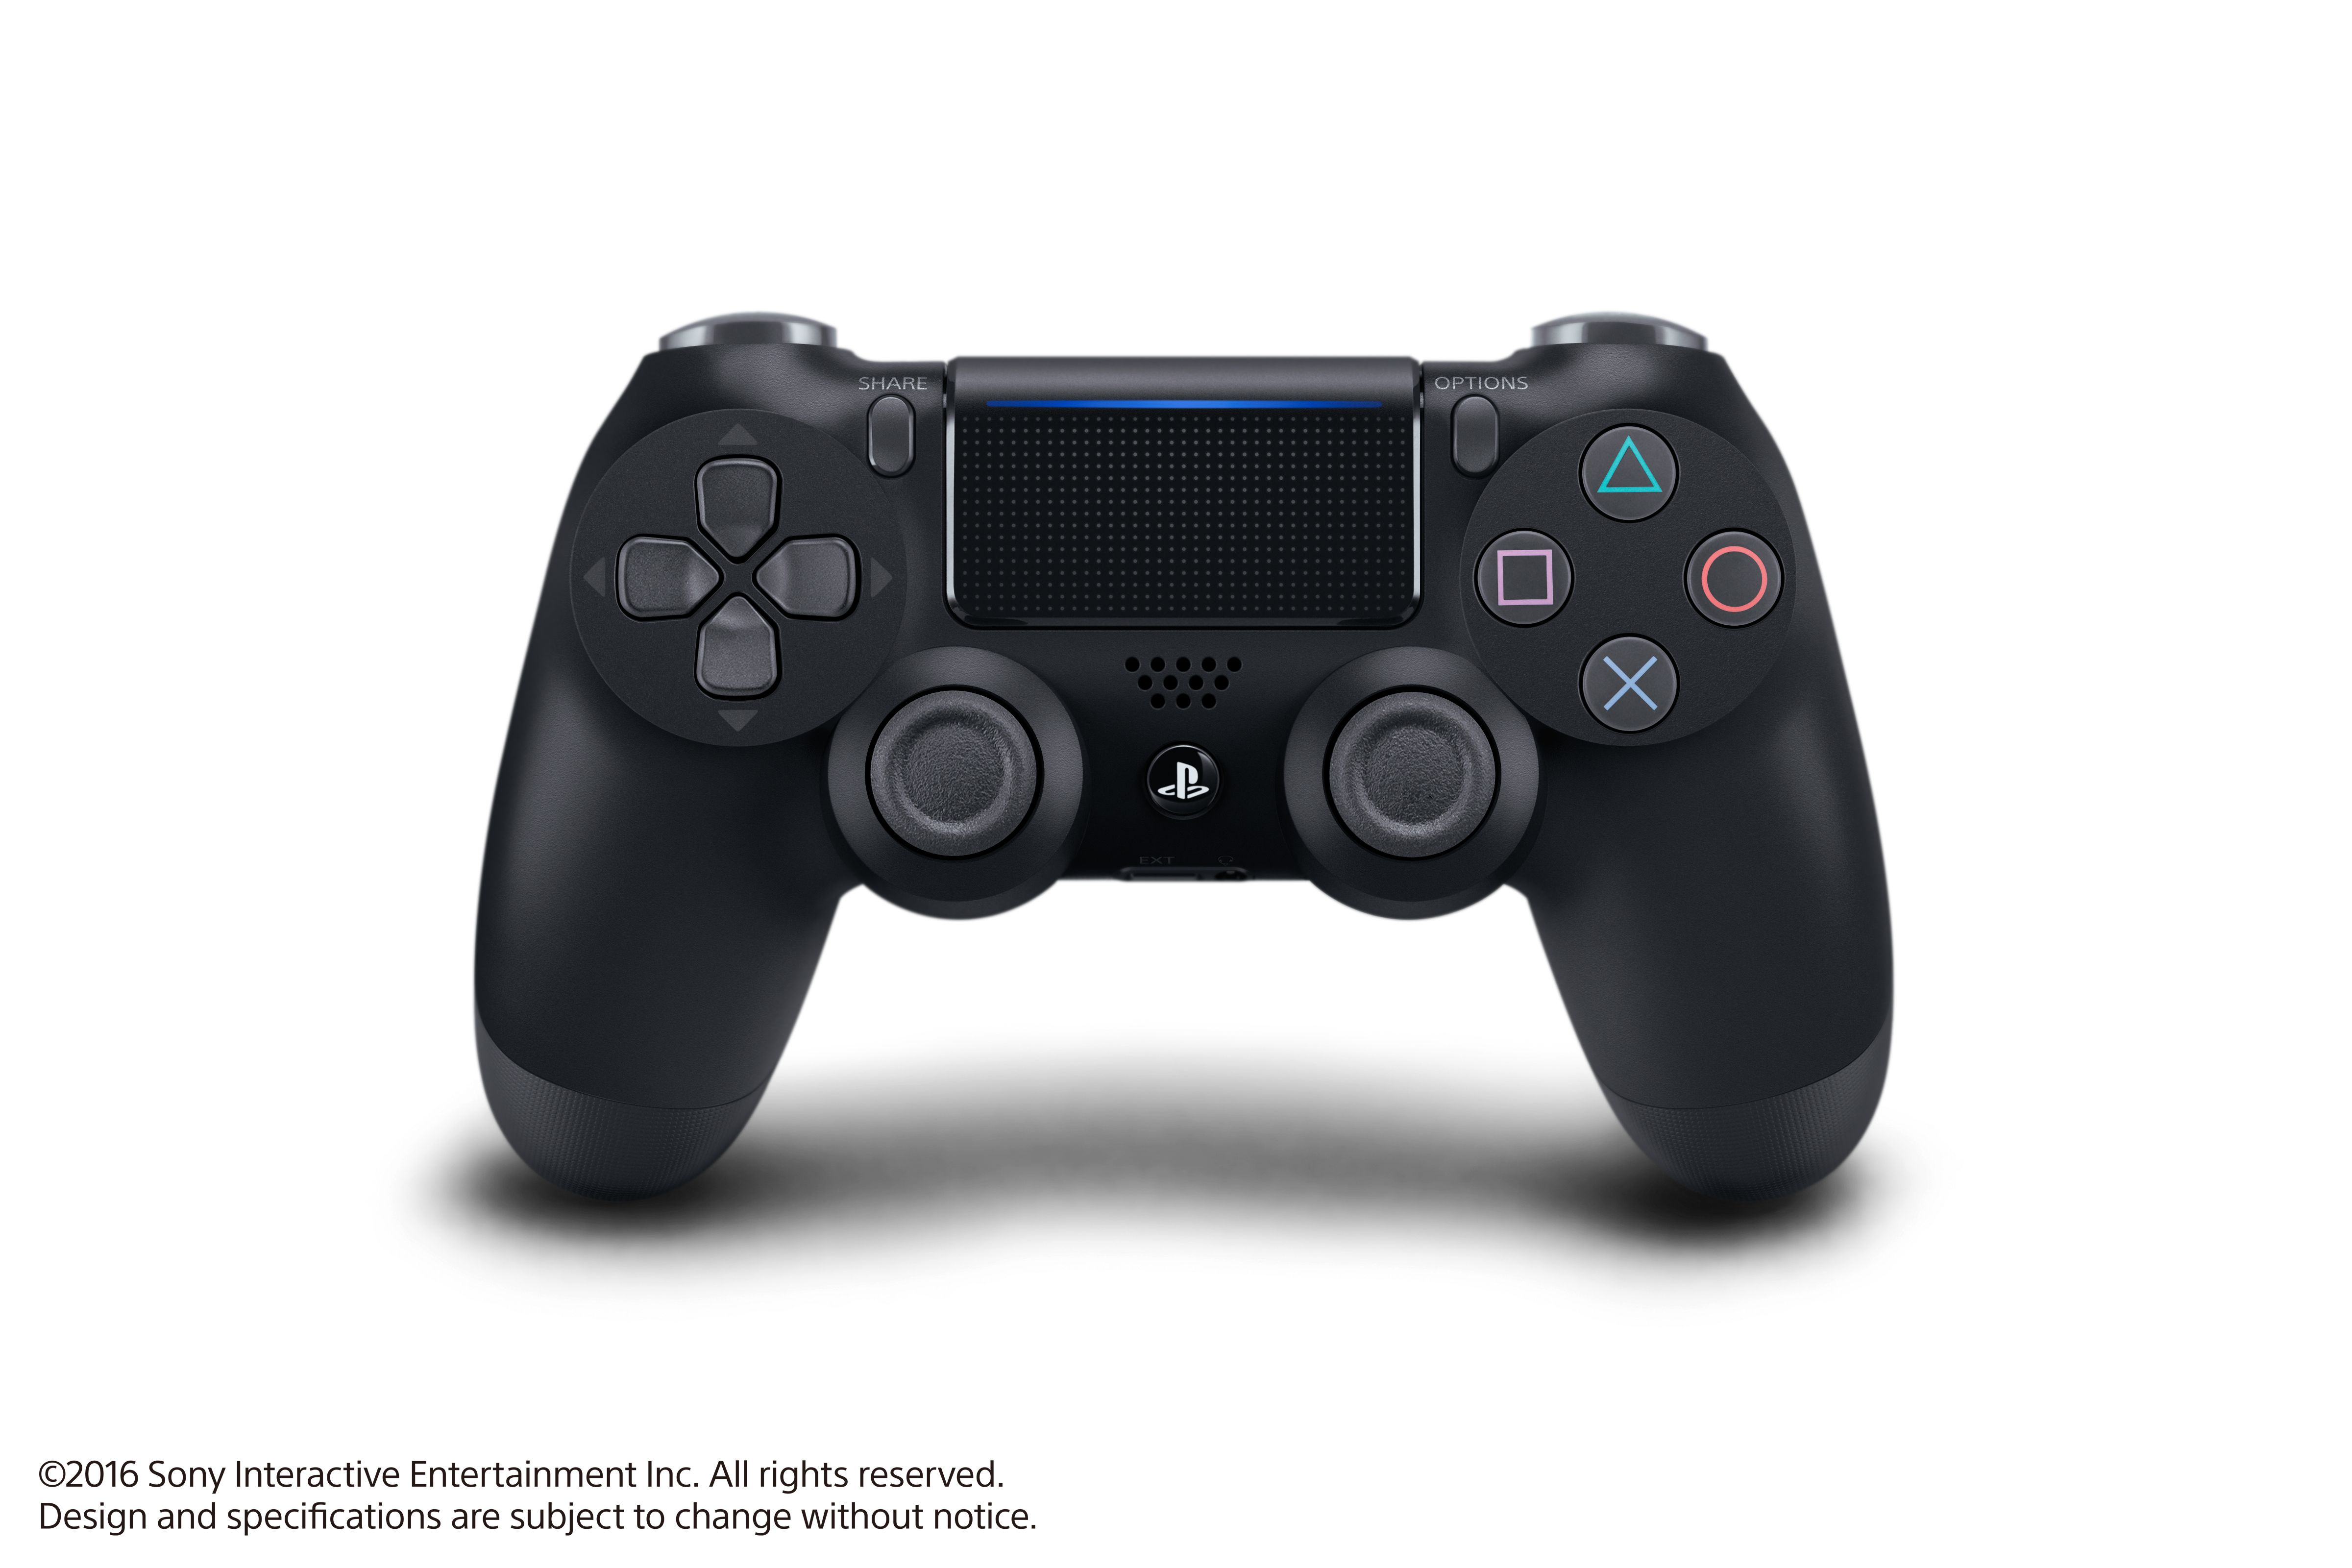 6677fbb3 The DualShock®4 Wireless Controller for PlayStation®4: Revolutionary,  Intuitive, Precise.